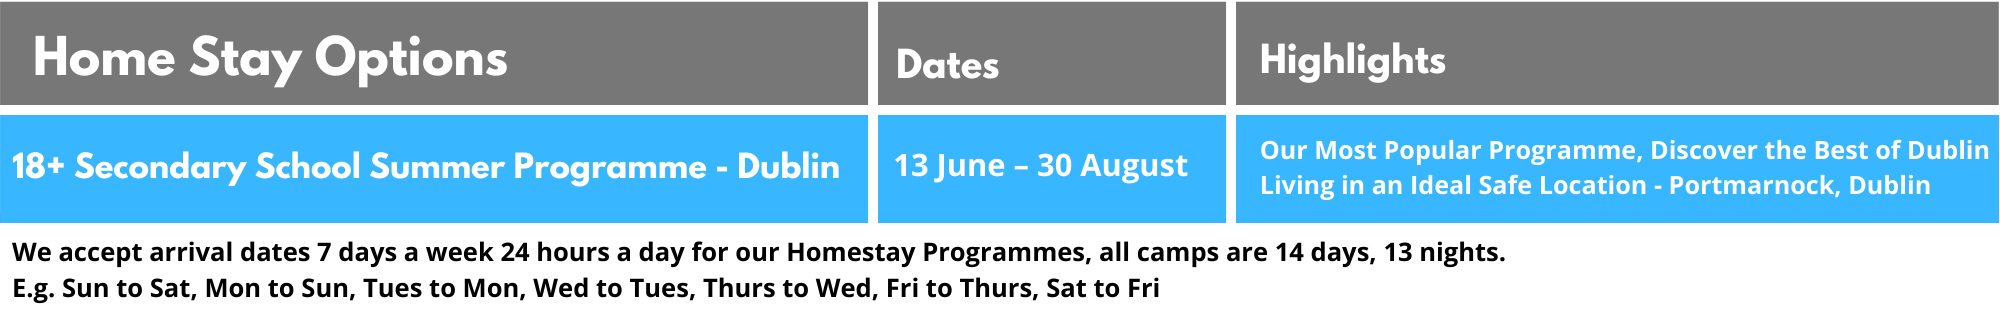 18+ Secondary School Summer Programme - Dublin